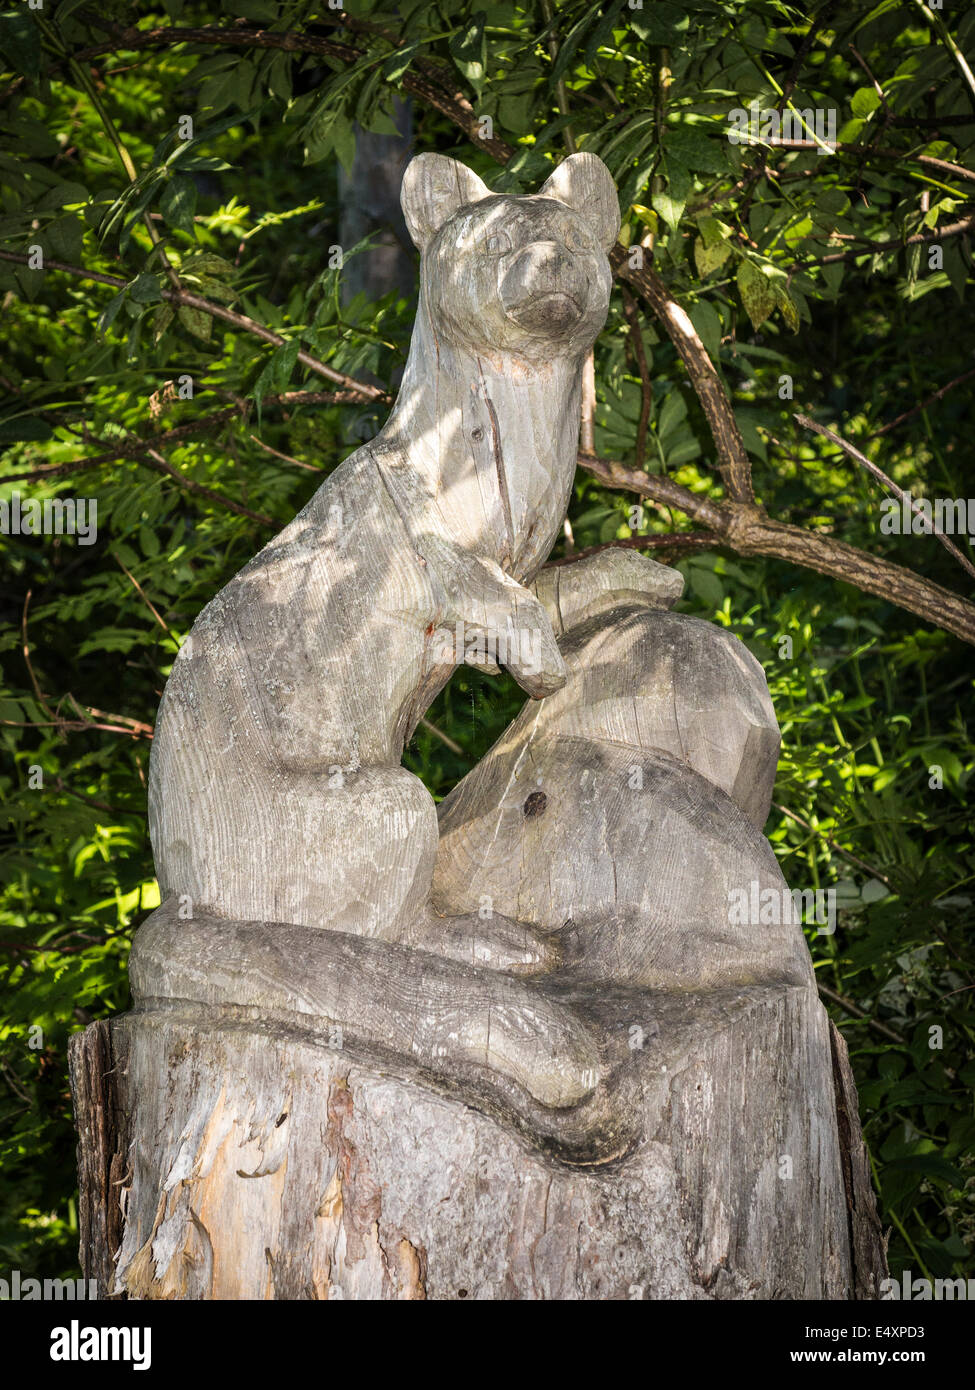 A wooden sculpture of a pine marten, carved from a tree trunk, along a nature trail in Switzerland - Stock Image